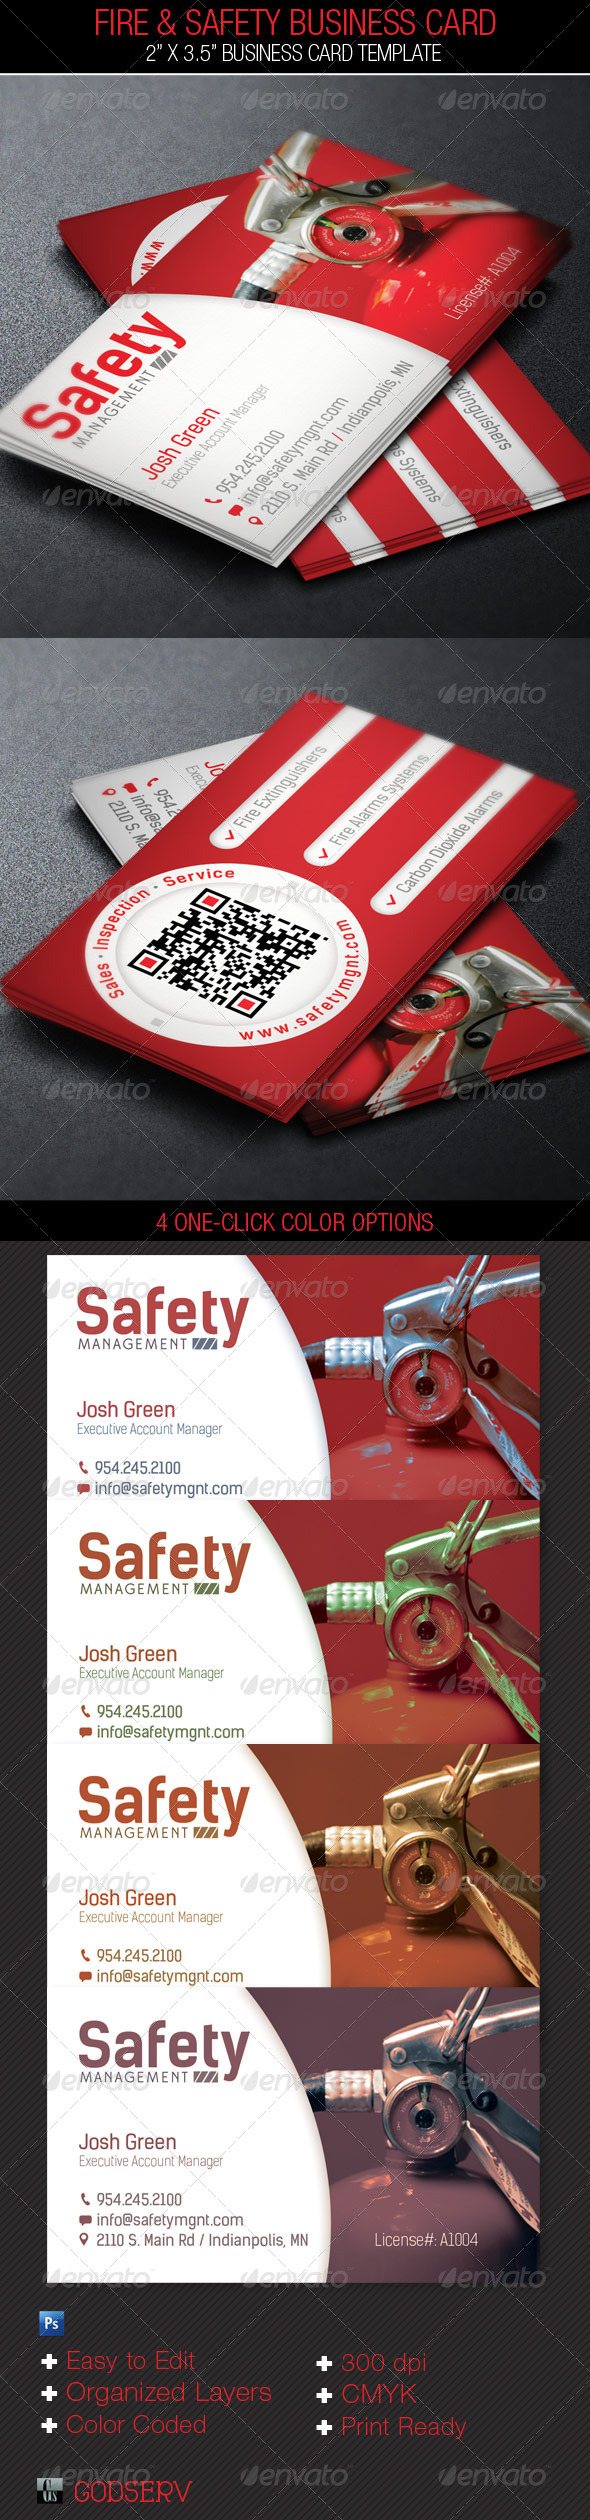 Fire safety service business card template by godserv graphicriver fire safety service business card template industry specific business cards colourmoves